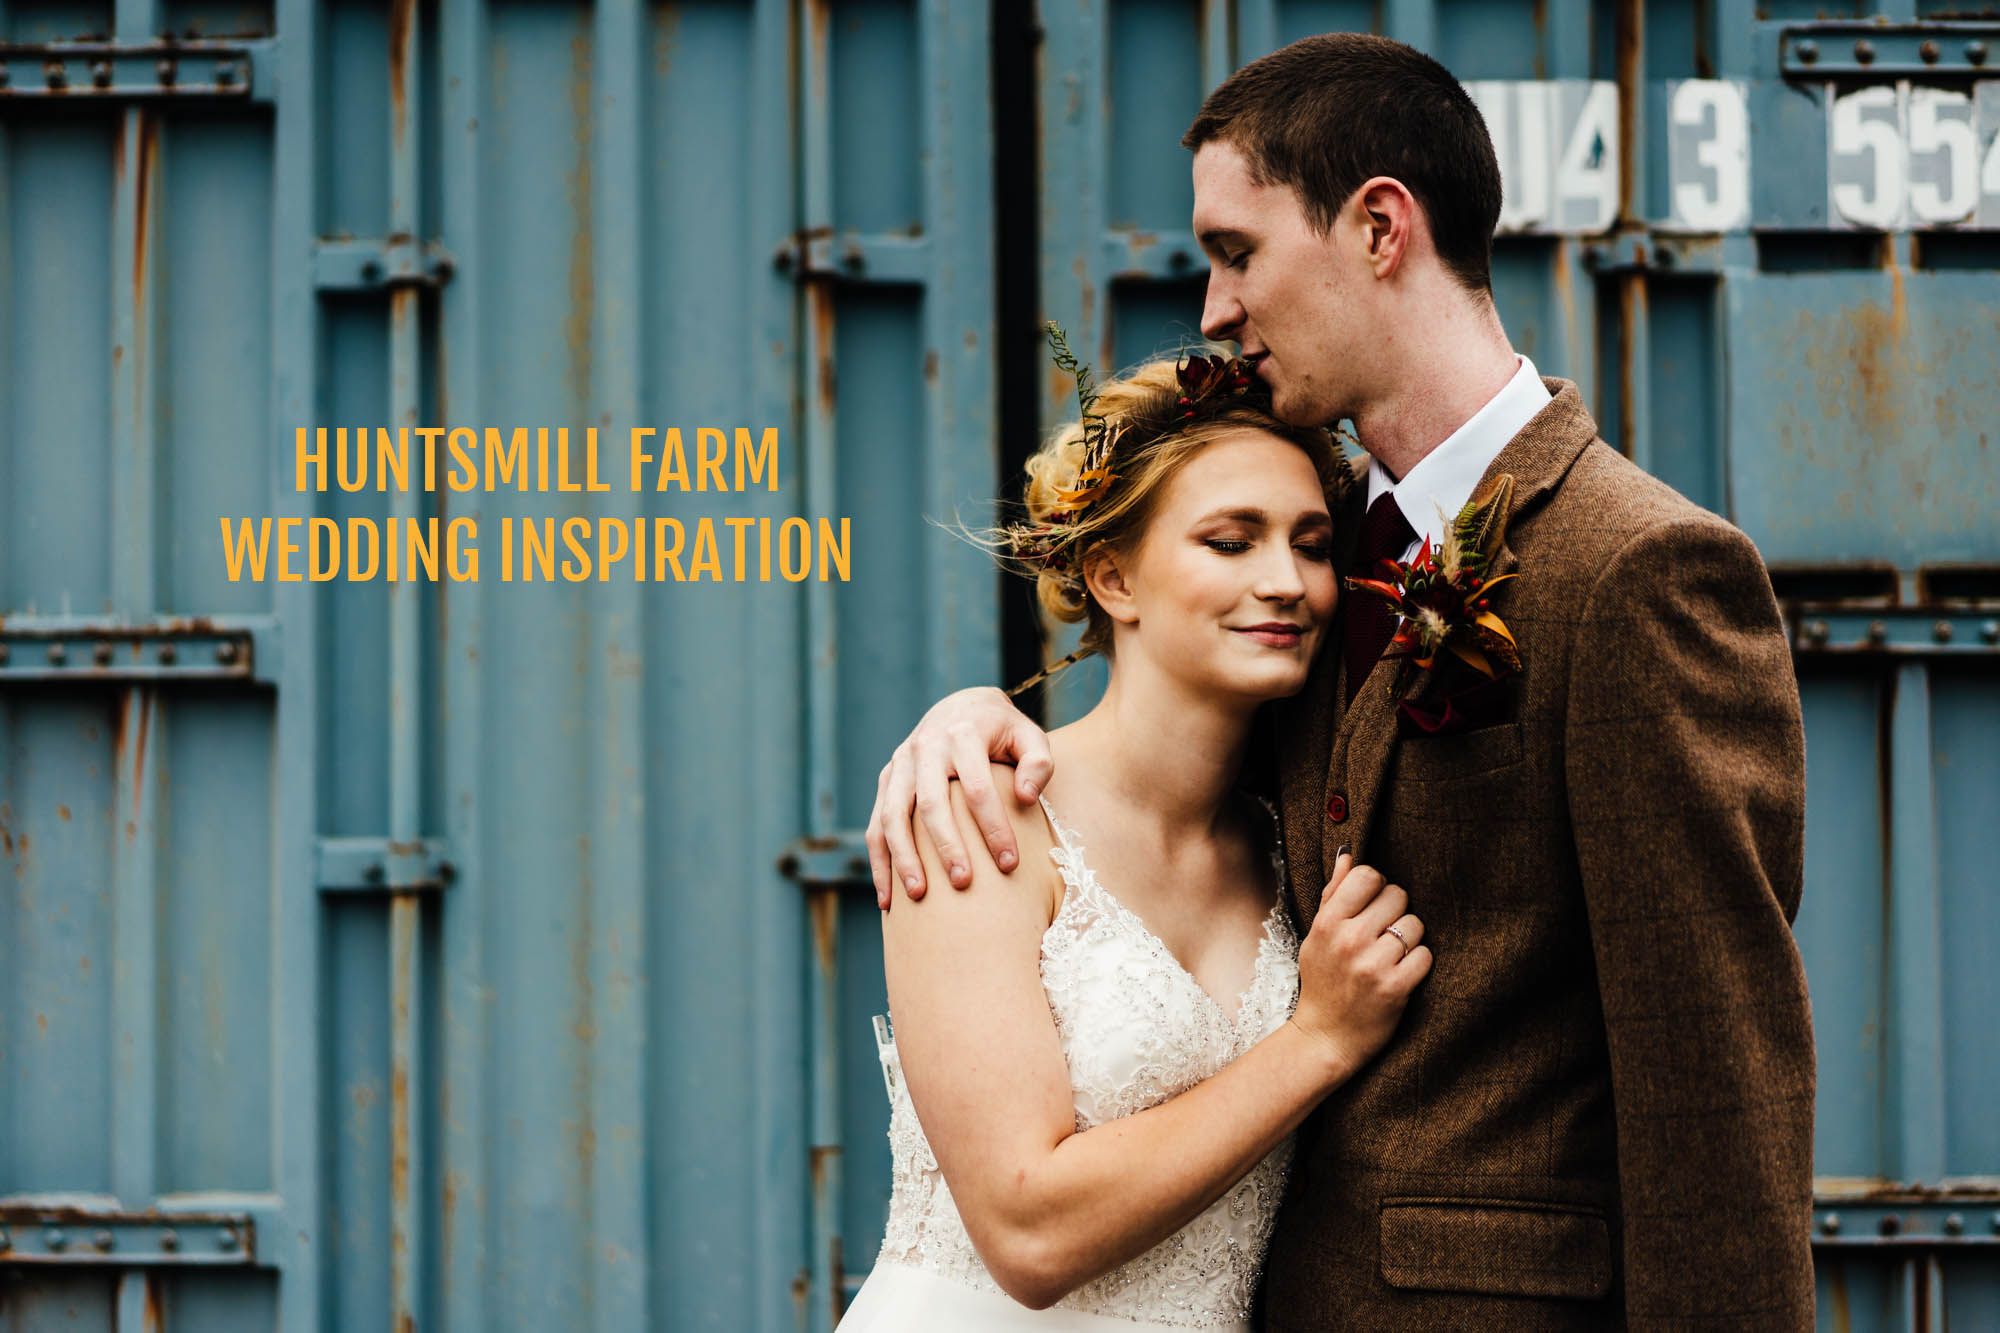 huntsmill farm wedding inspiration